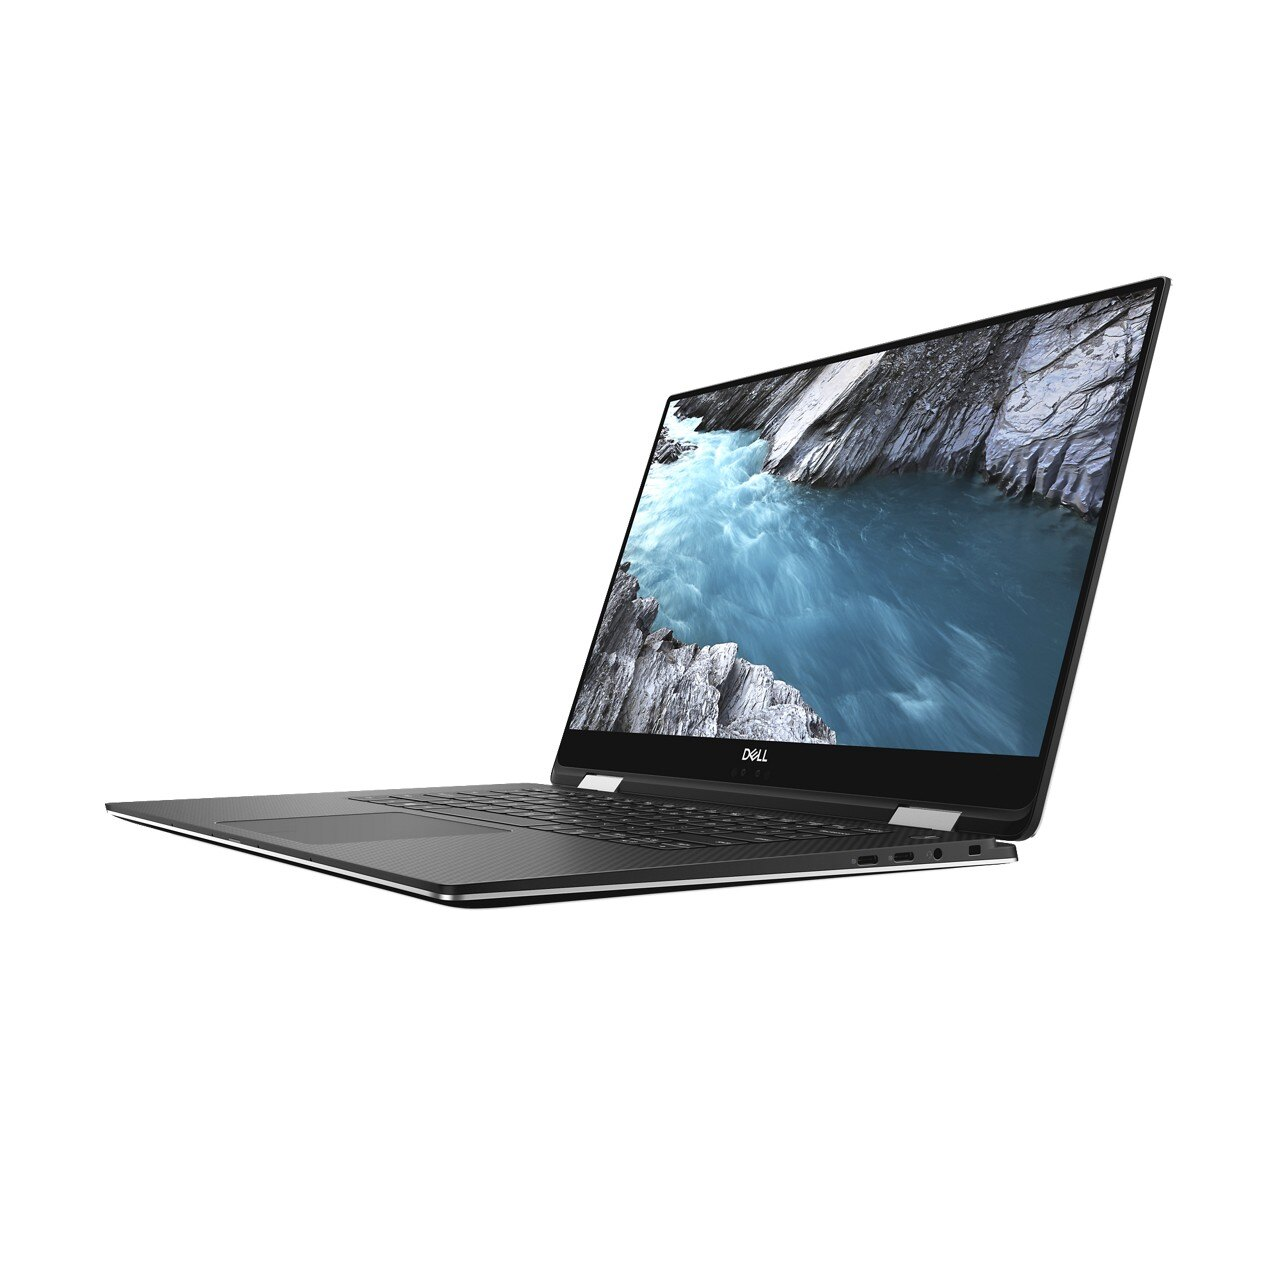 Dell XPS 15 2-in-1- 8th Gen i7- Radeon RX Vega M GL- 256GB SSD- 8GB RAM-  Win 10